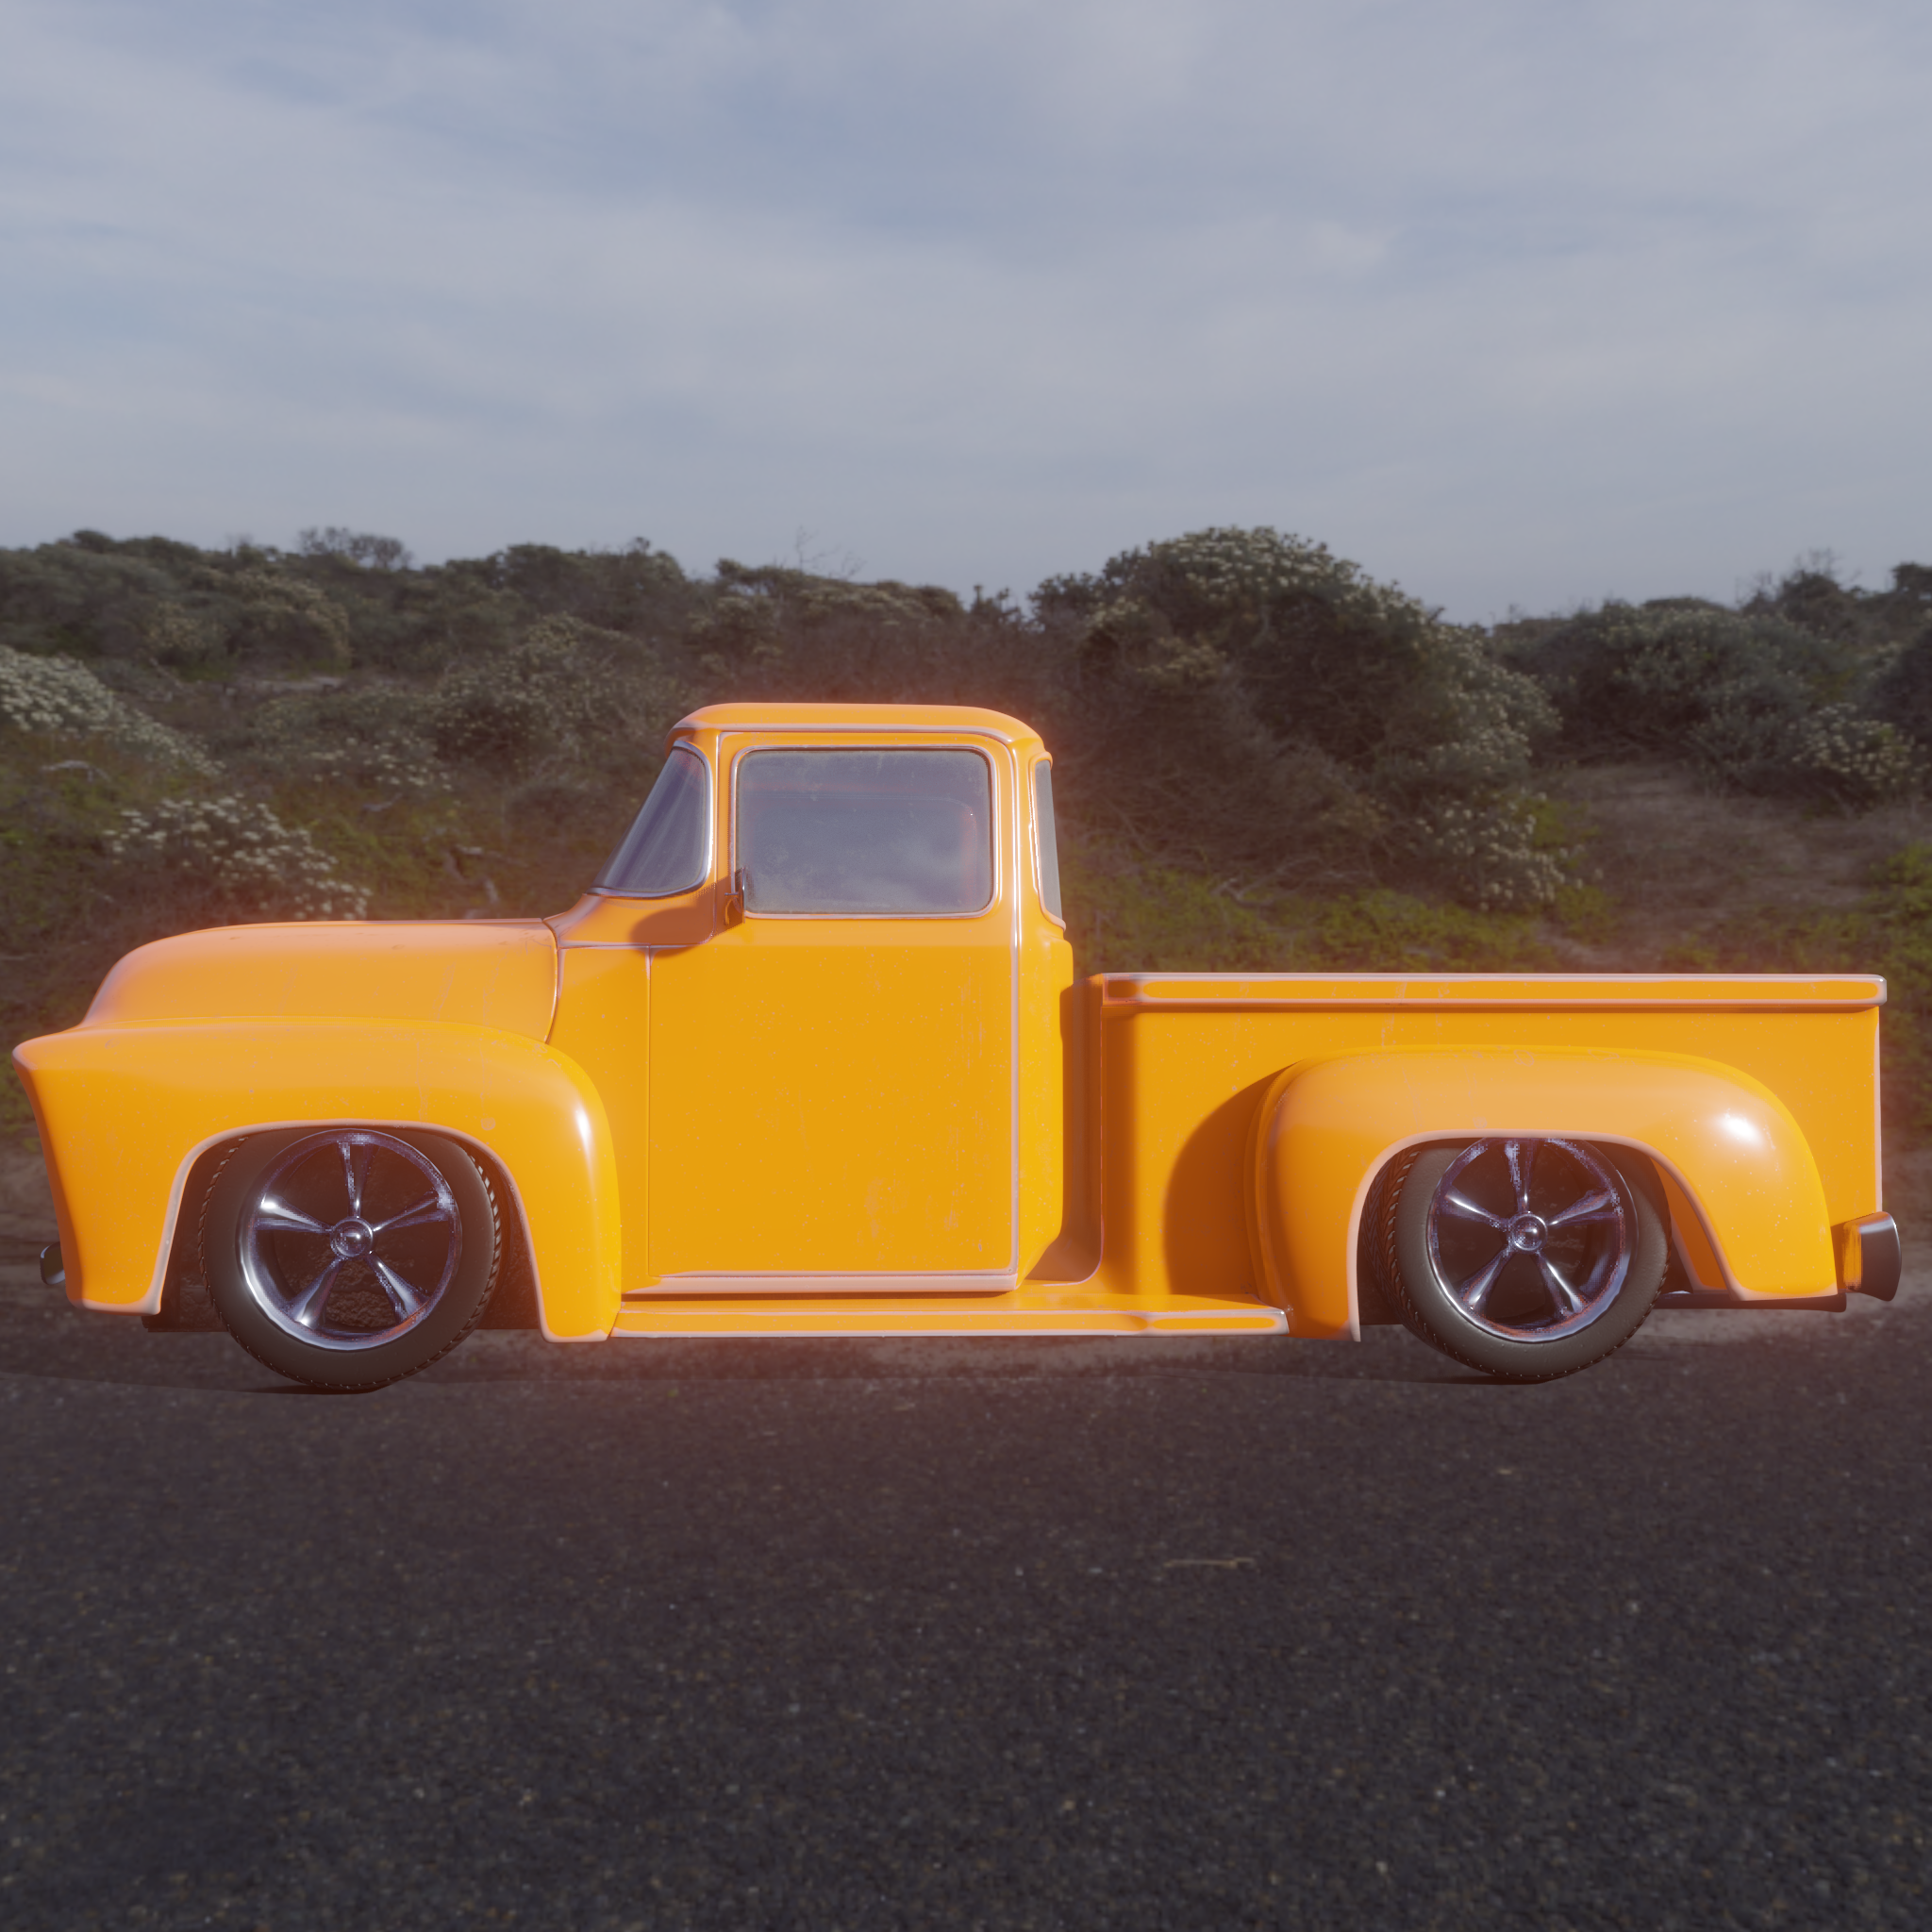 1950's F100 Pickup Truck preview image 3